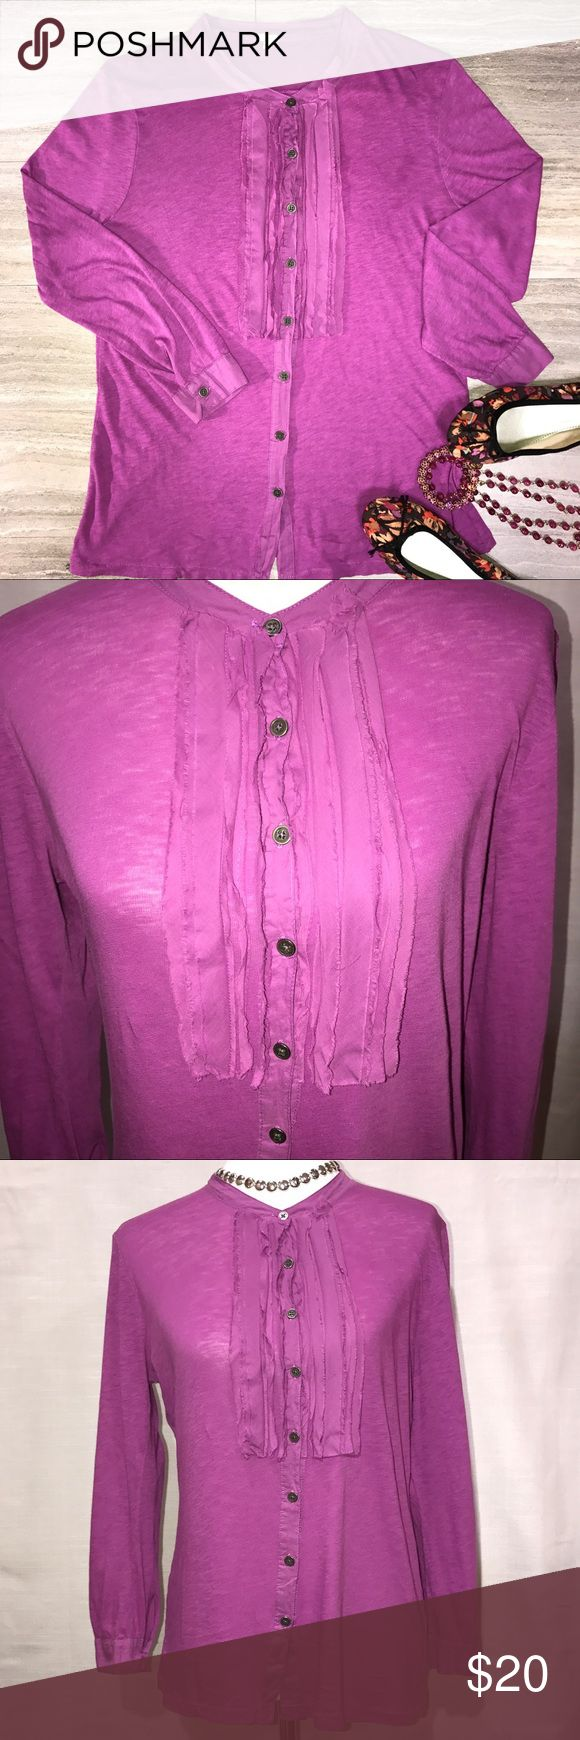 J Crew Ruffled Tuxedo Violet Tee J Crew long sleeve tee. Violet purple, ruffled tuxedo bust, button front and sleeve cuffs. Great condition. J. Crew Tops Tees - Long Sleeve